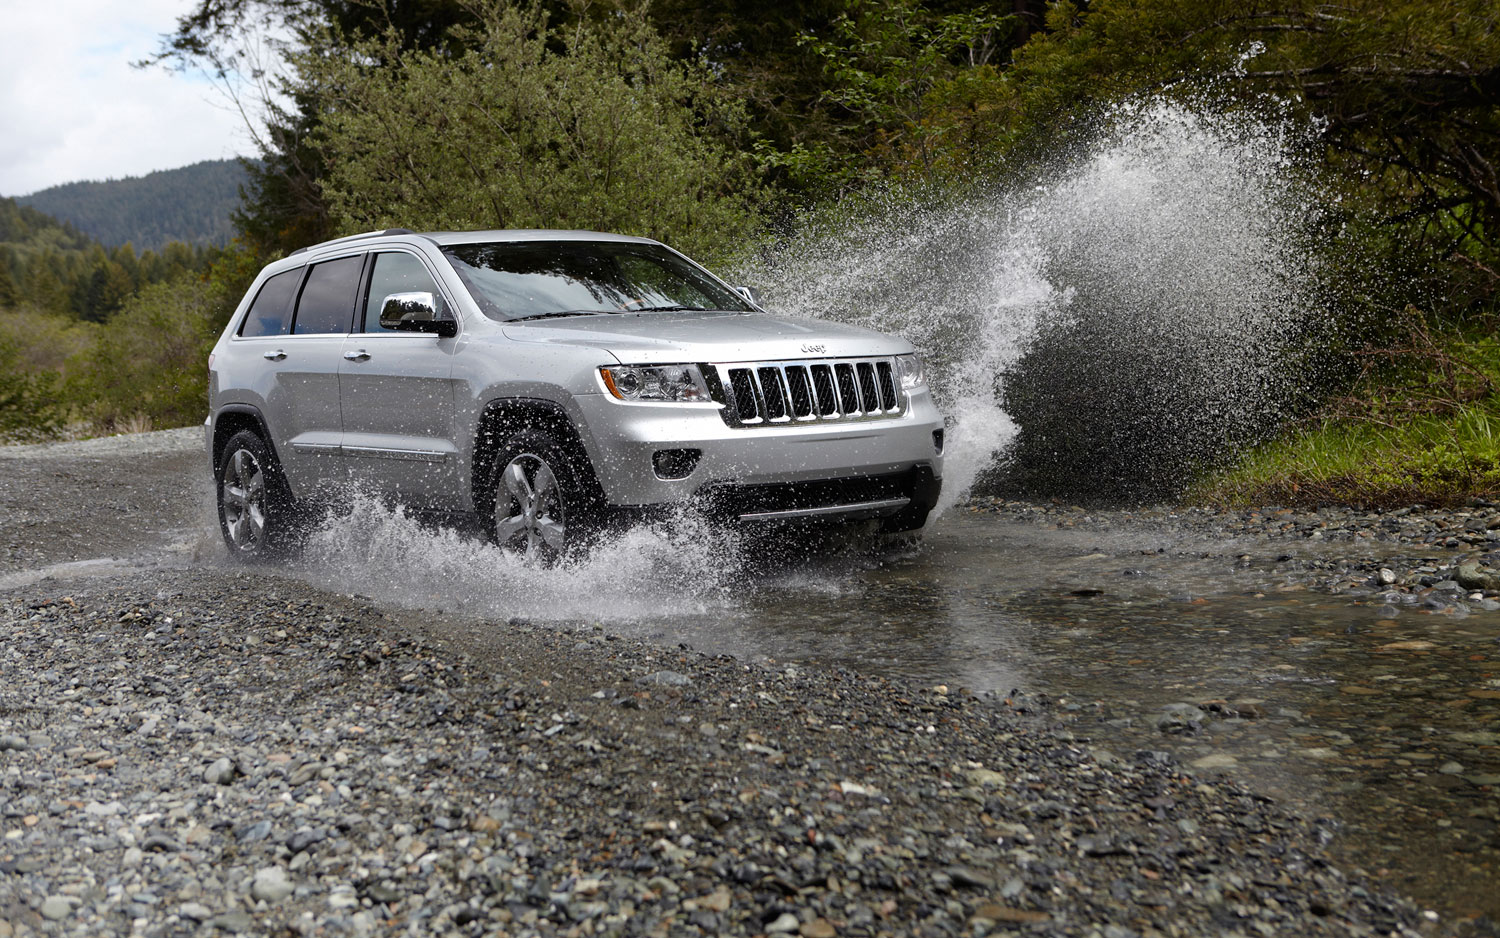 2012 Jeep Grand Cherokee Going Through Stream1